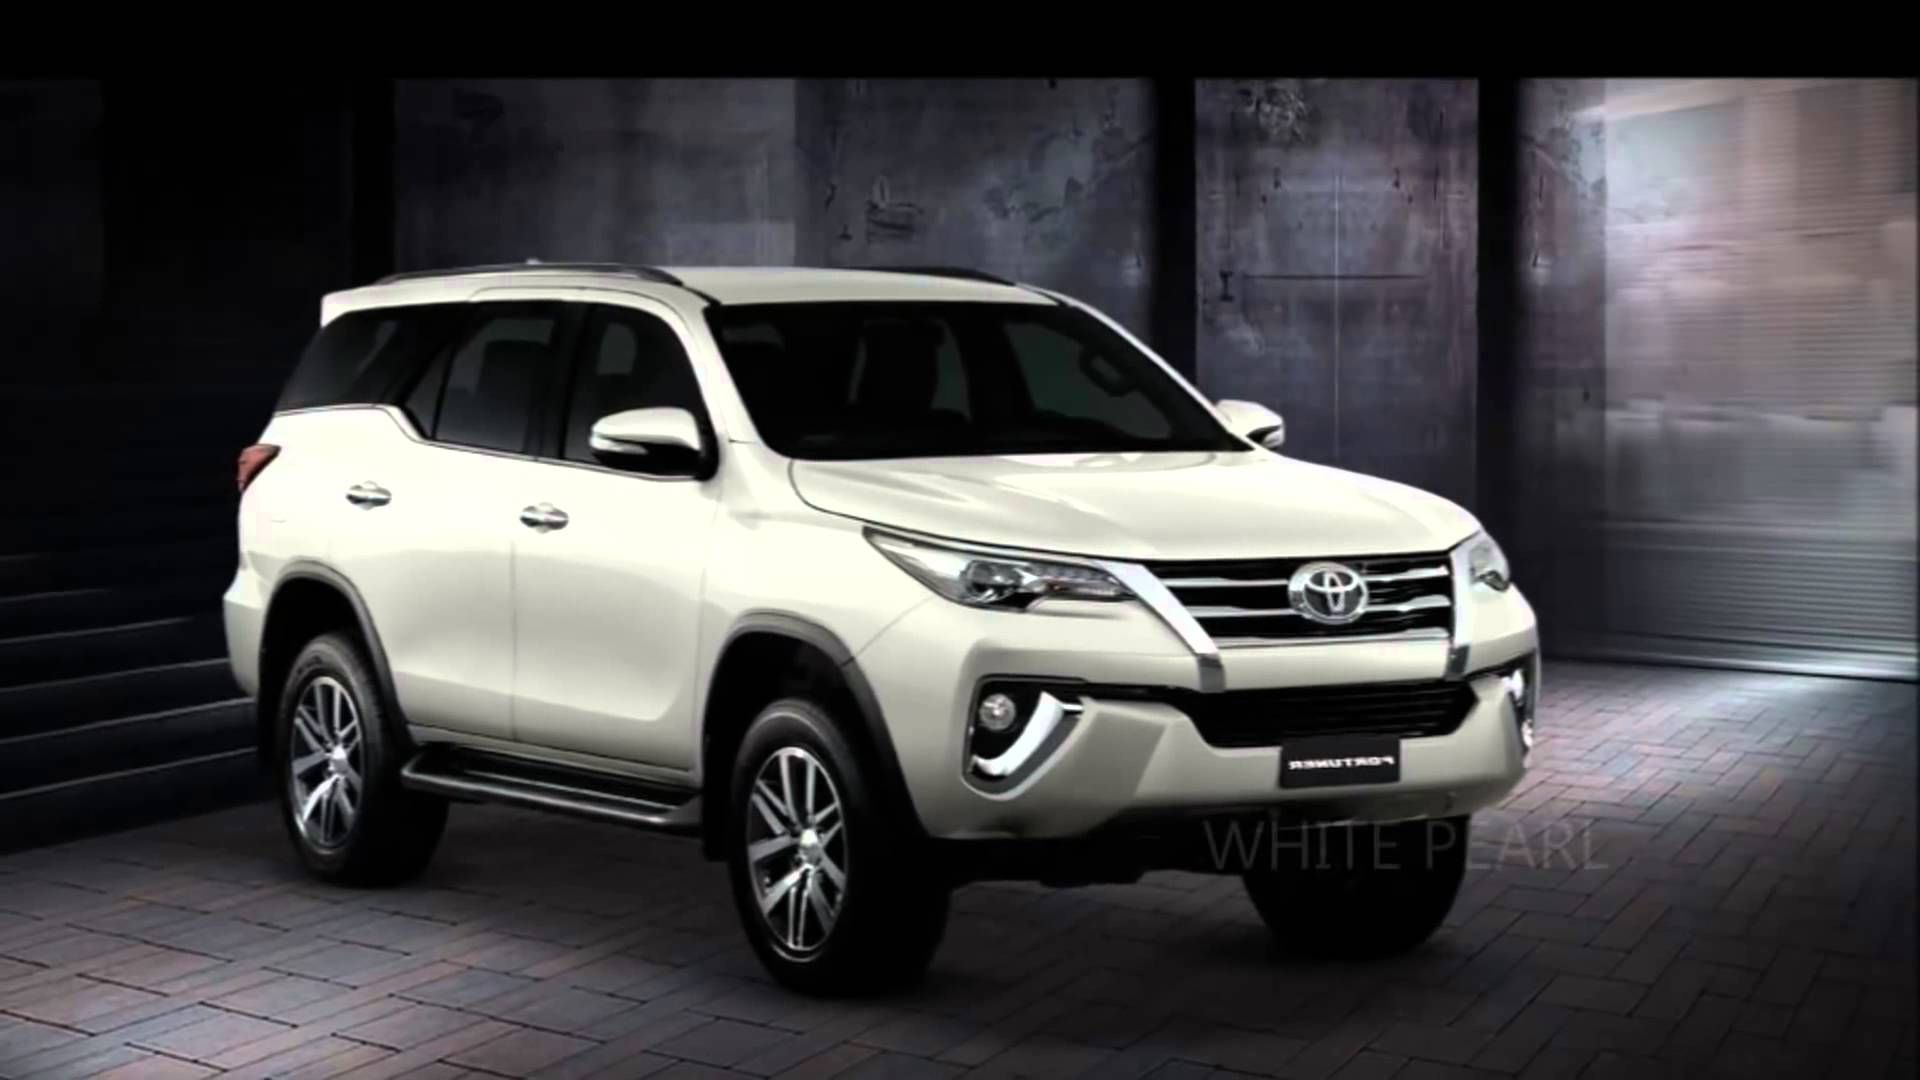 New Toyota Fortuner Wallpaper HD ariewae Car wallpapers 1920x1080